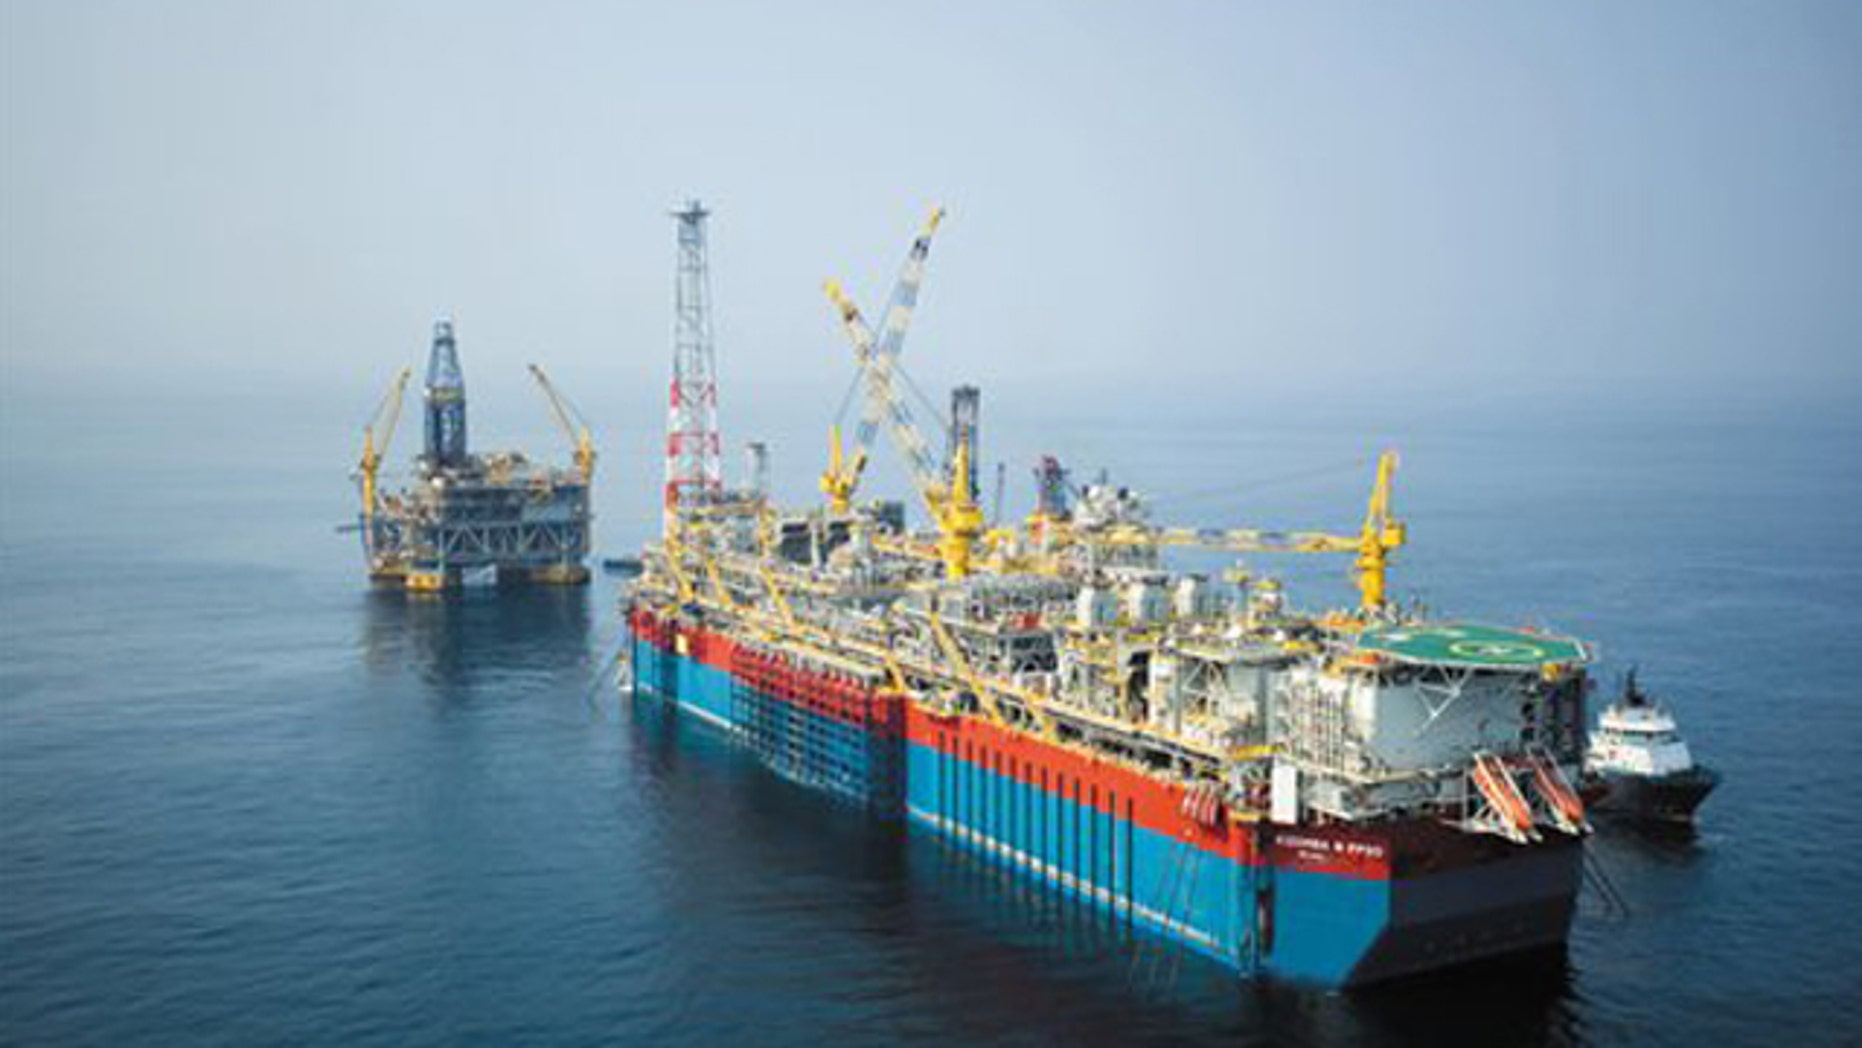 Shown here is the Kizomba B development in Angola Block 15, a deepwater drilling project.